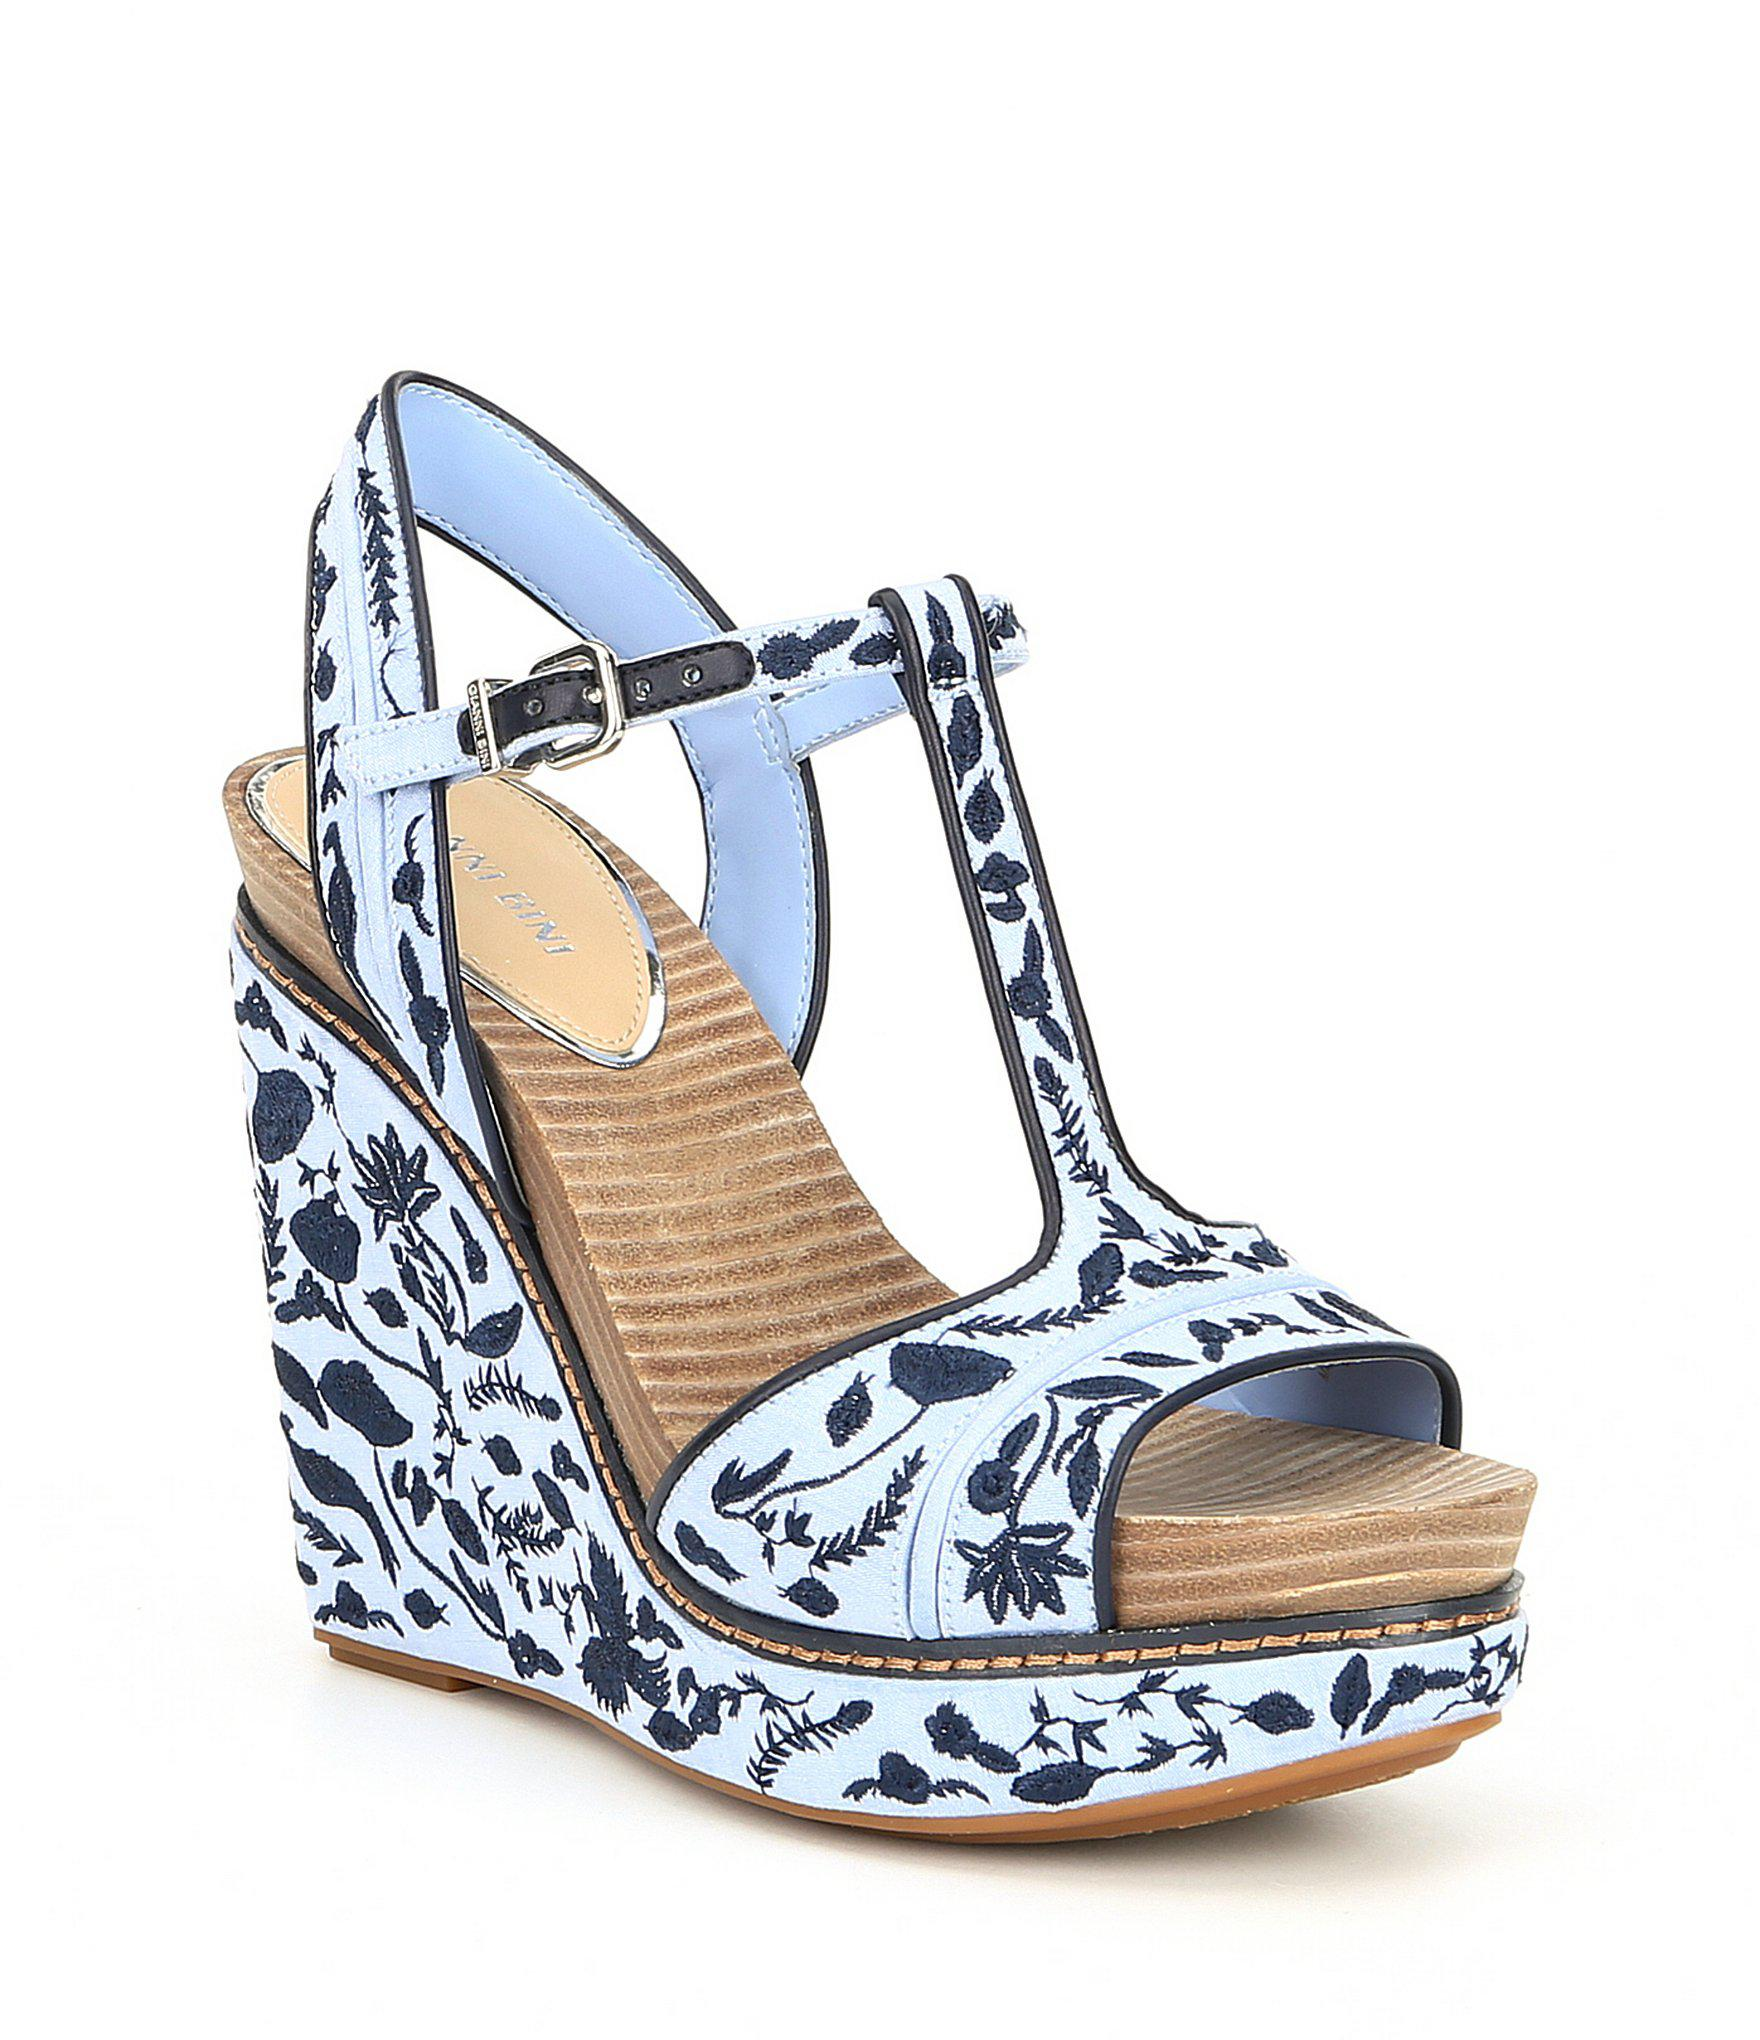 afca803d5ff1 Lyst - Gianni Bini Sarritahh Floral Embroidered Wedges in Blue